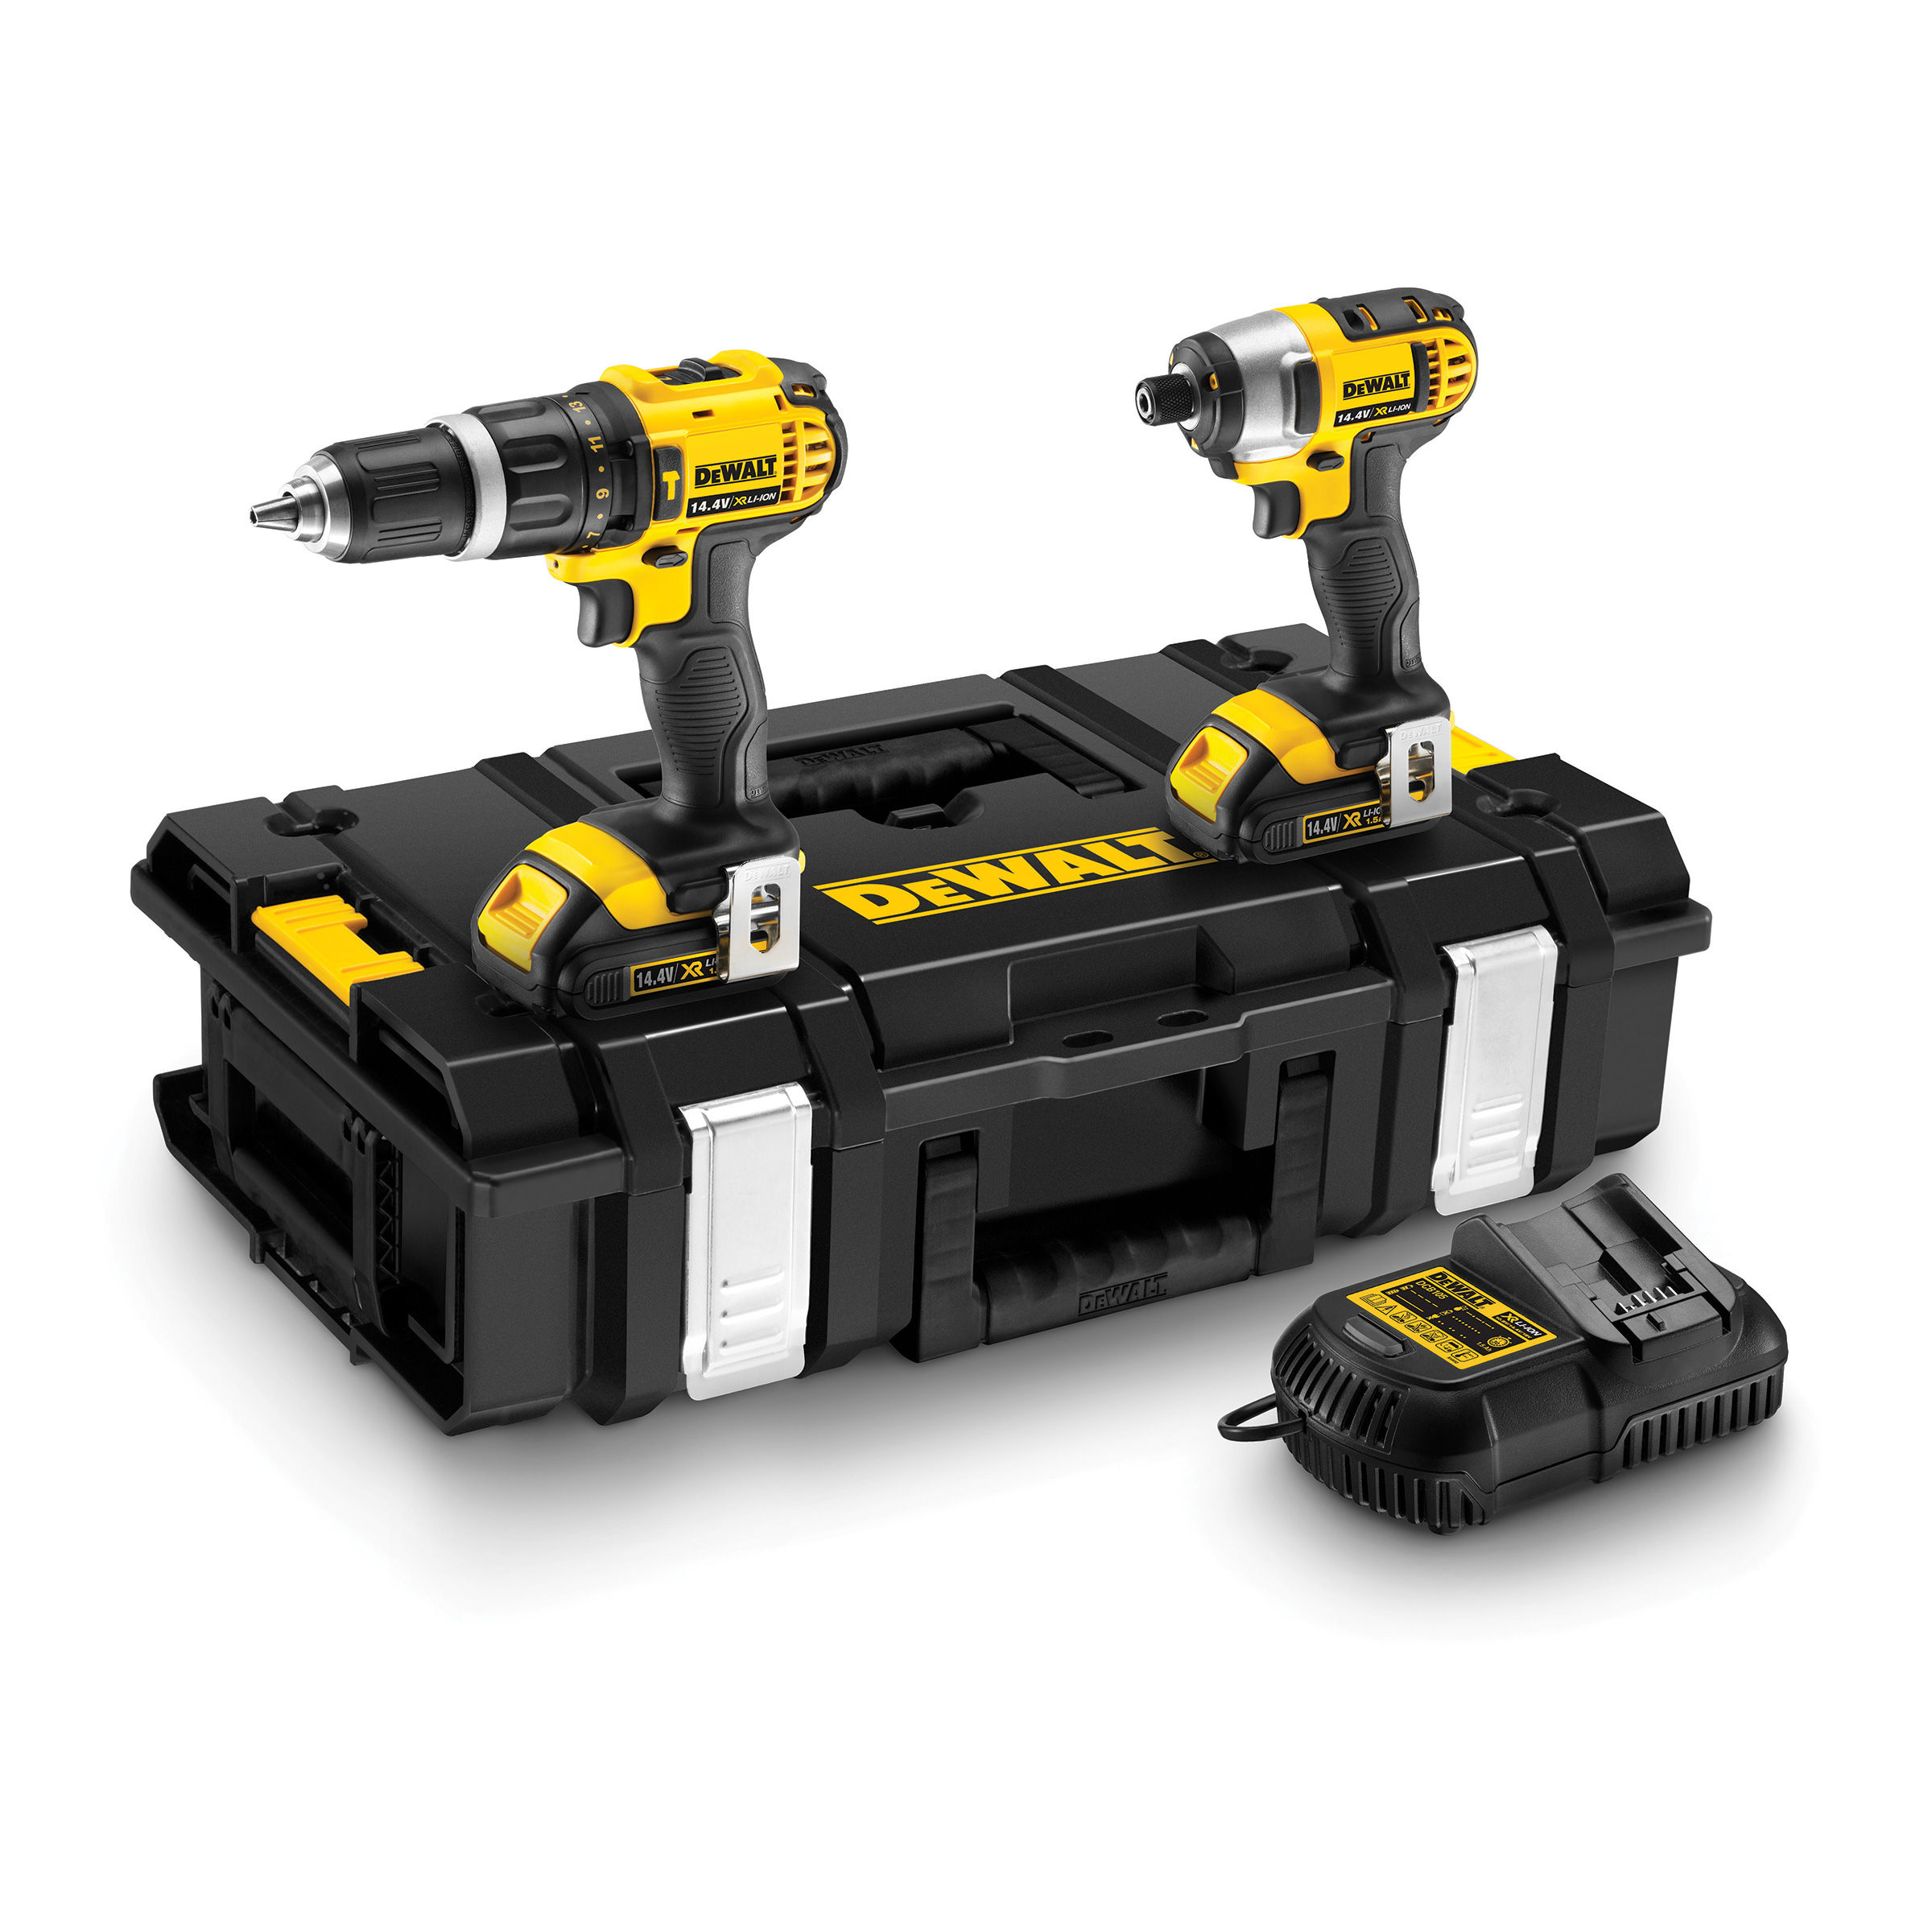 Toolstop Dewalt DCK235C2 14.4V XR Twin Pack